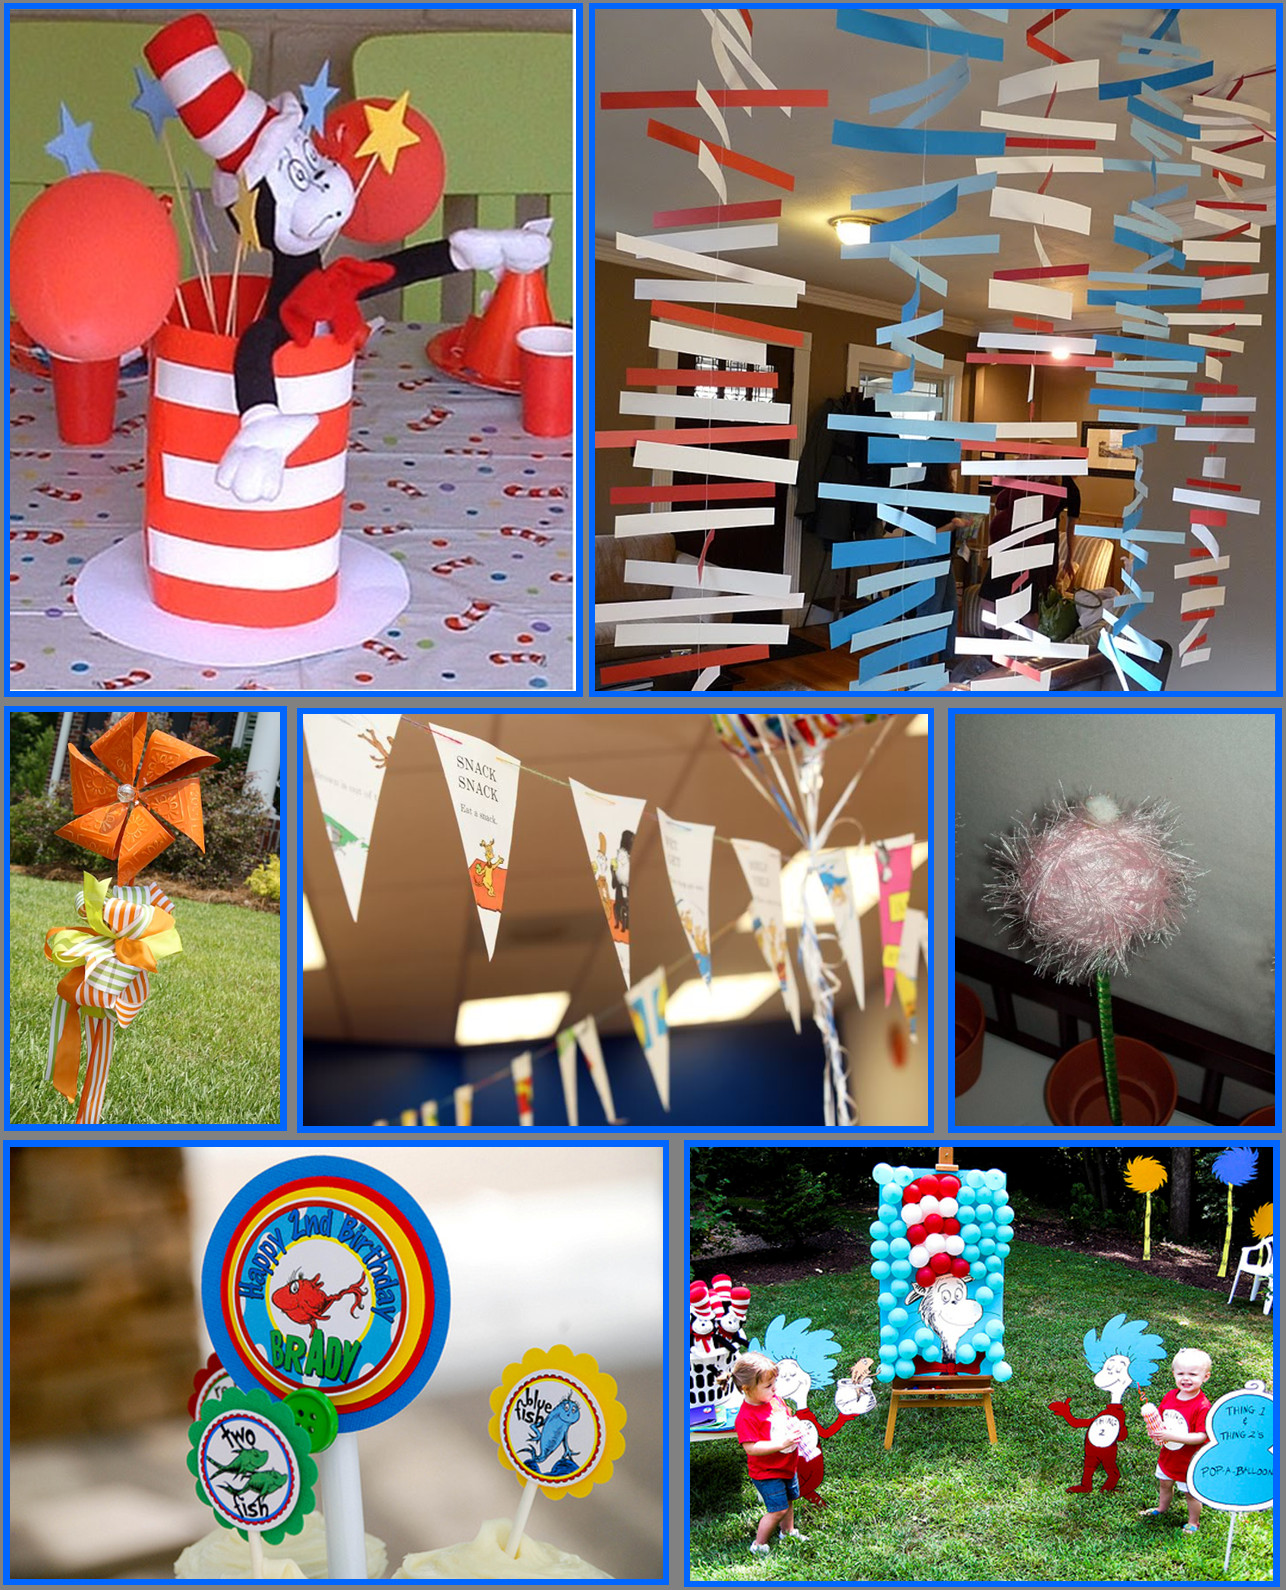 Best ideas about Dr.seuss Birthday Decorations . Save or Pin Dr Seuss Now.